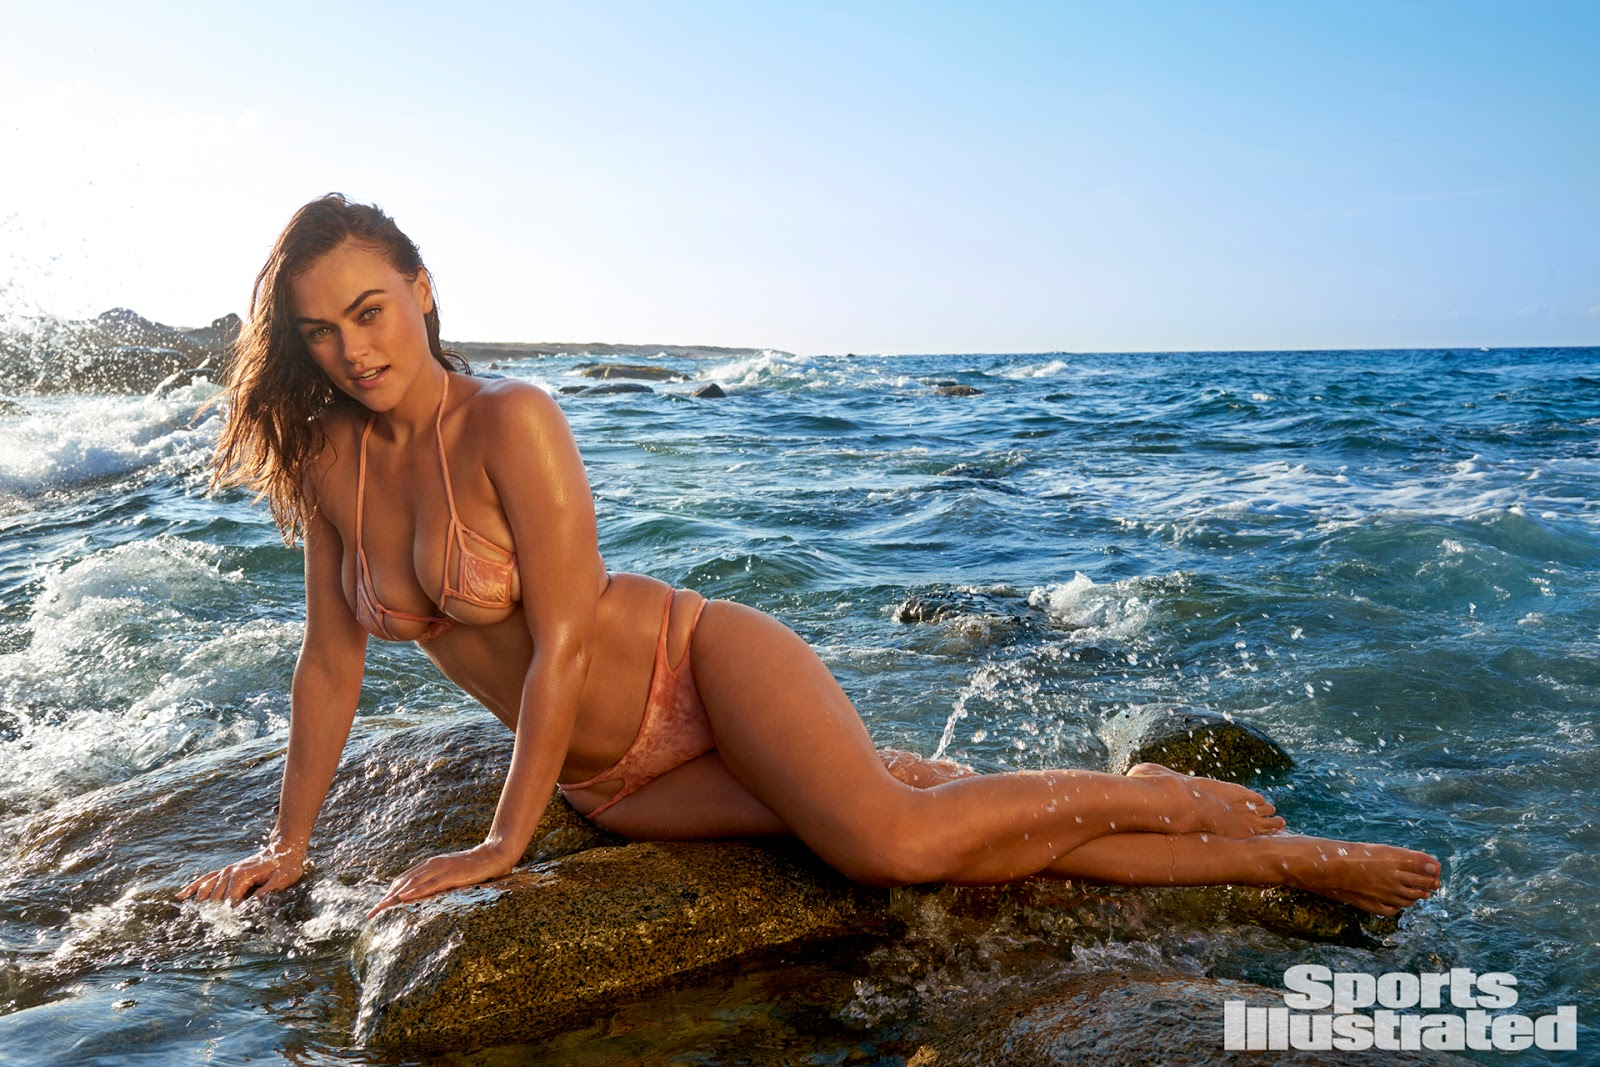 Myla Dalbesio – Sports Illustrated Swimsuit Issue 2018 Photoshoot Myla Dalbesio was photographed by Yu Tsai in Aruba.